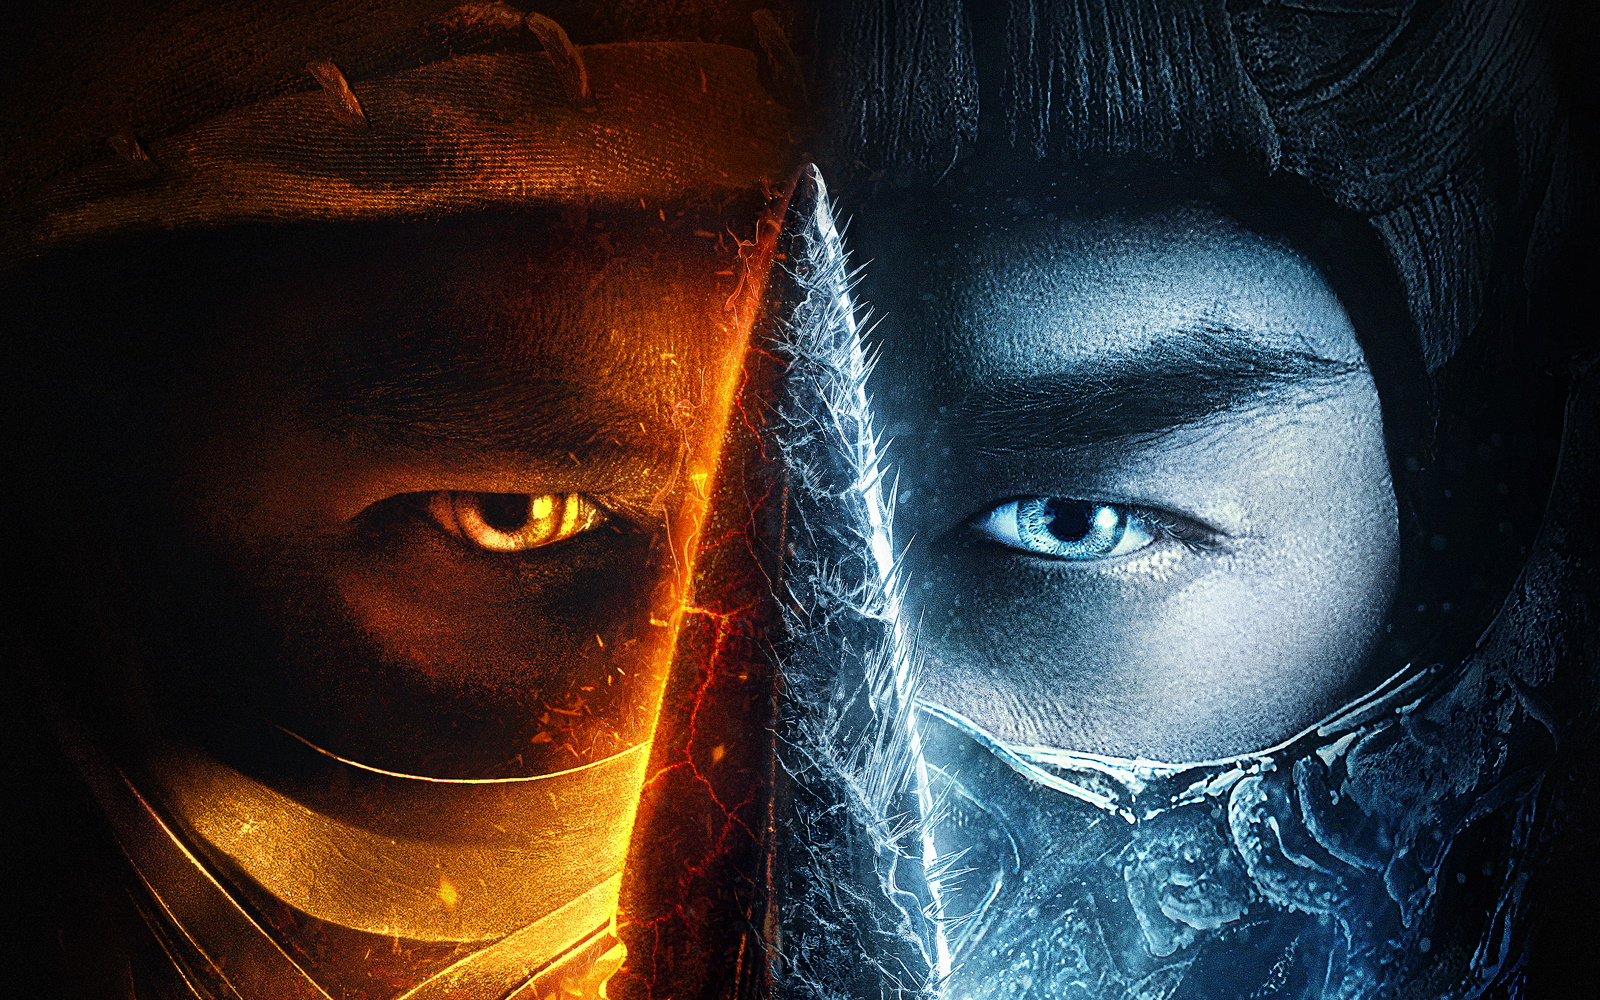 Gruesome First-Look Trailer For Mortal Kombat Released